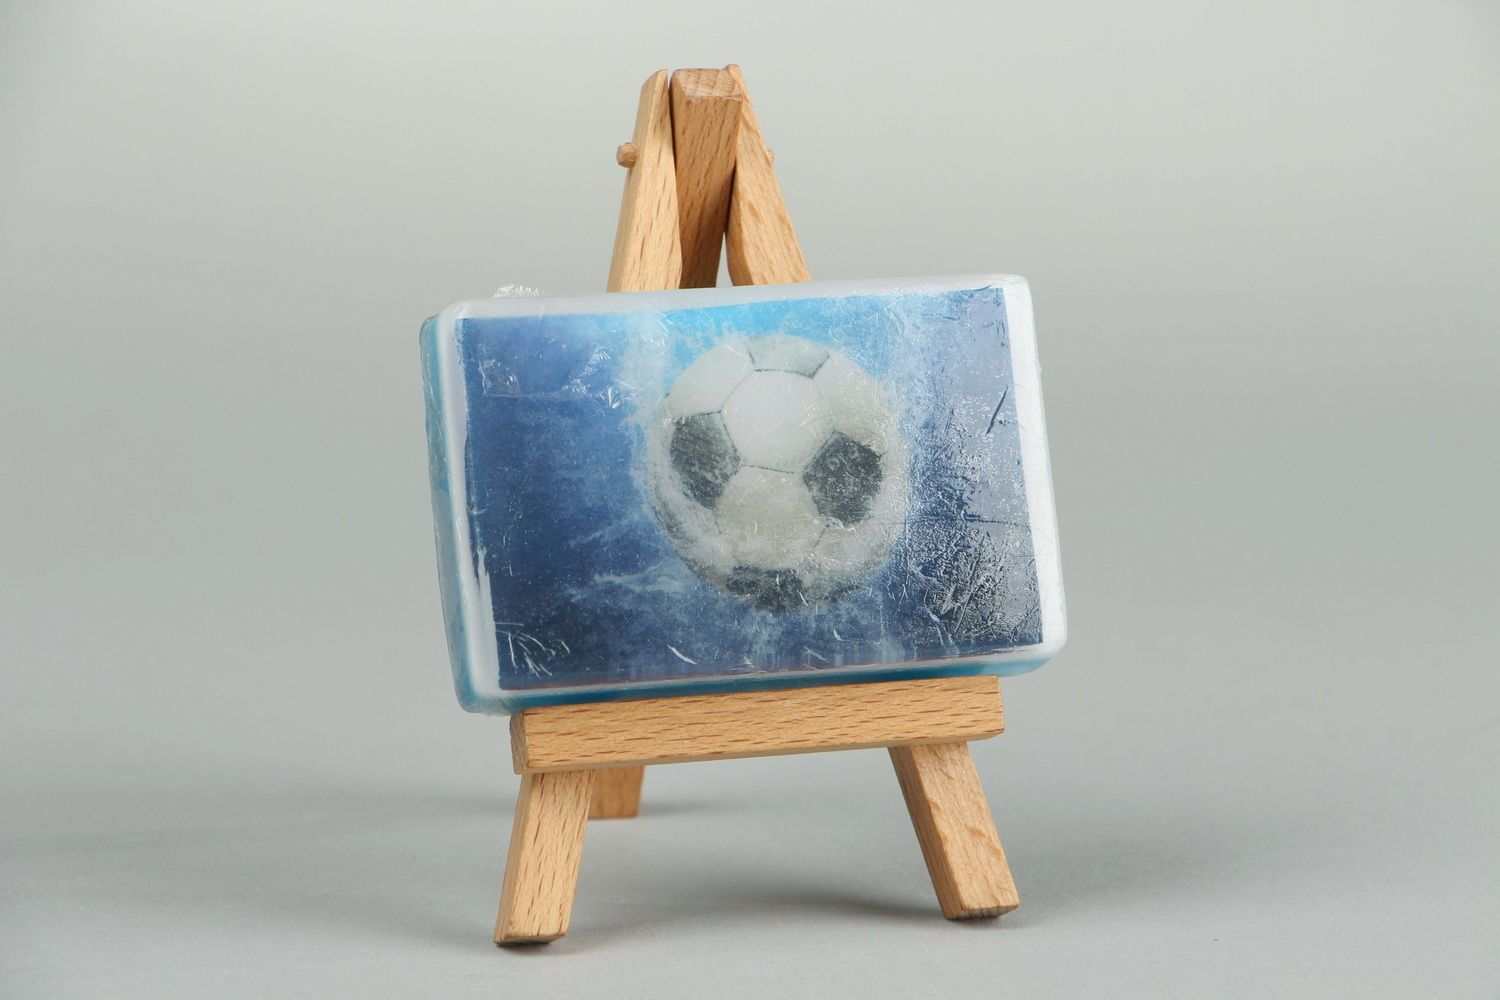 Soap-picture Football photo 2